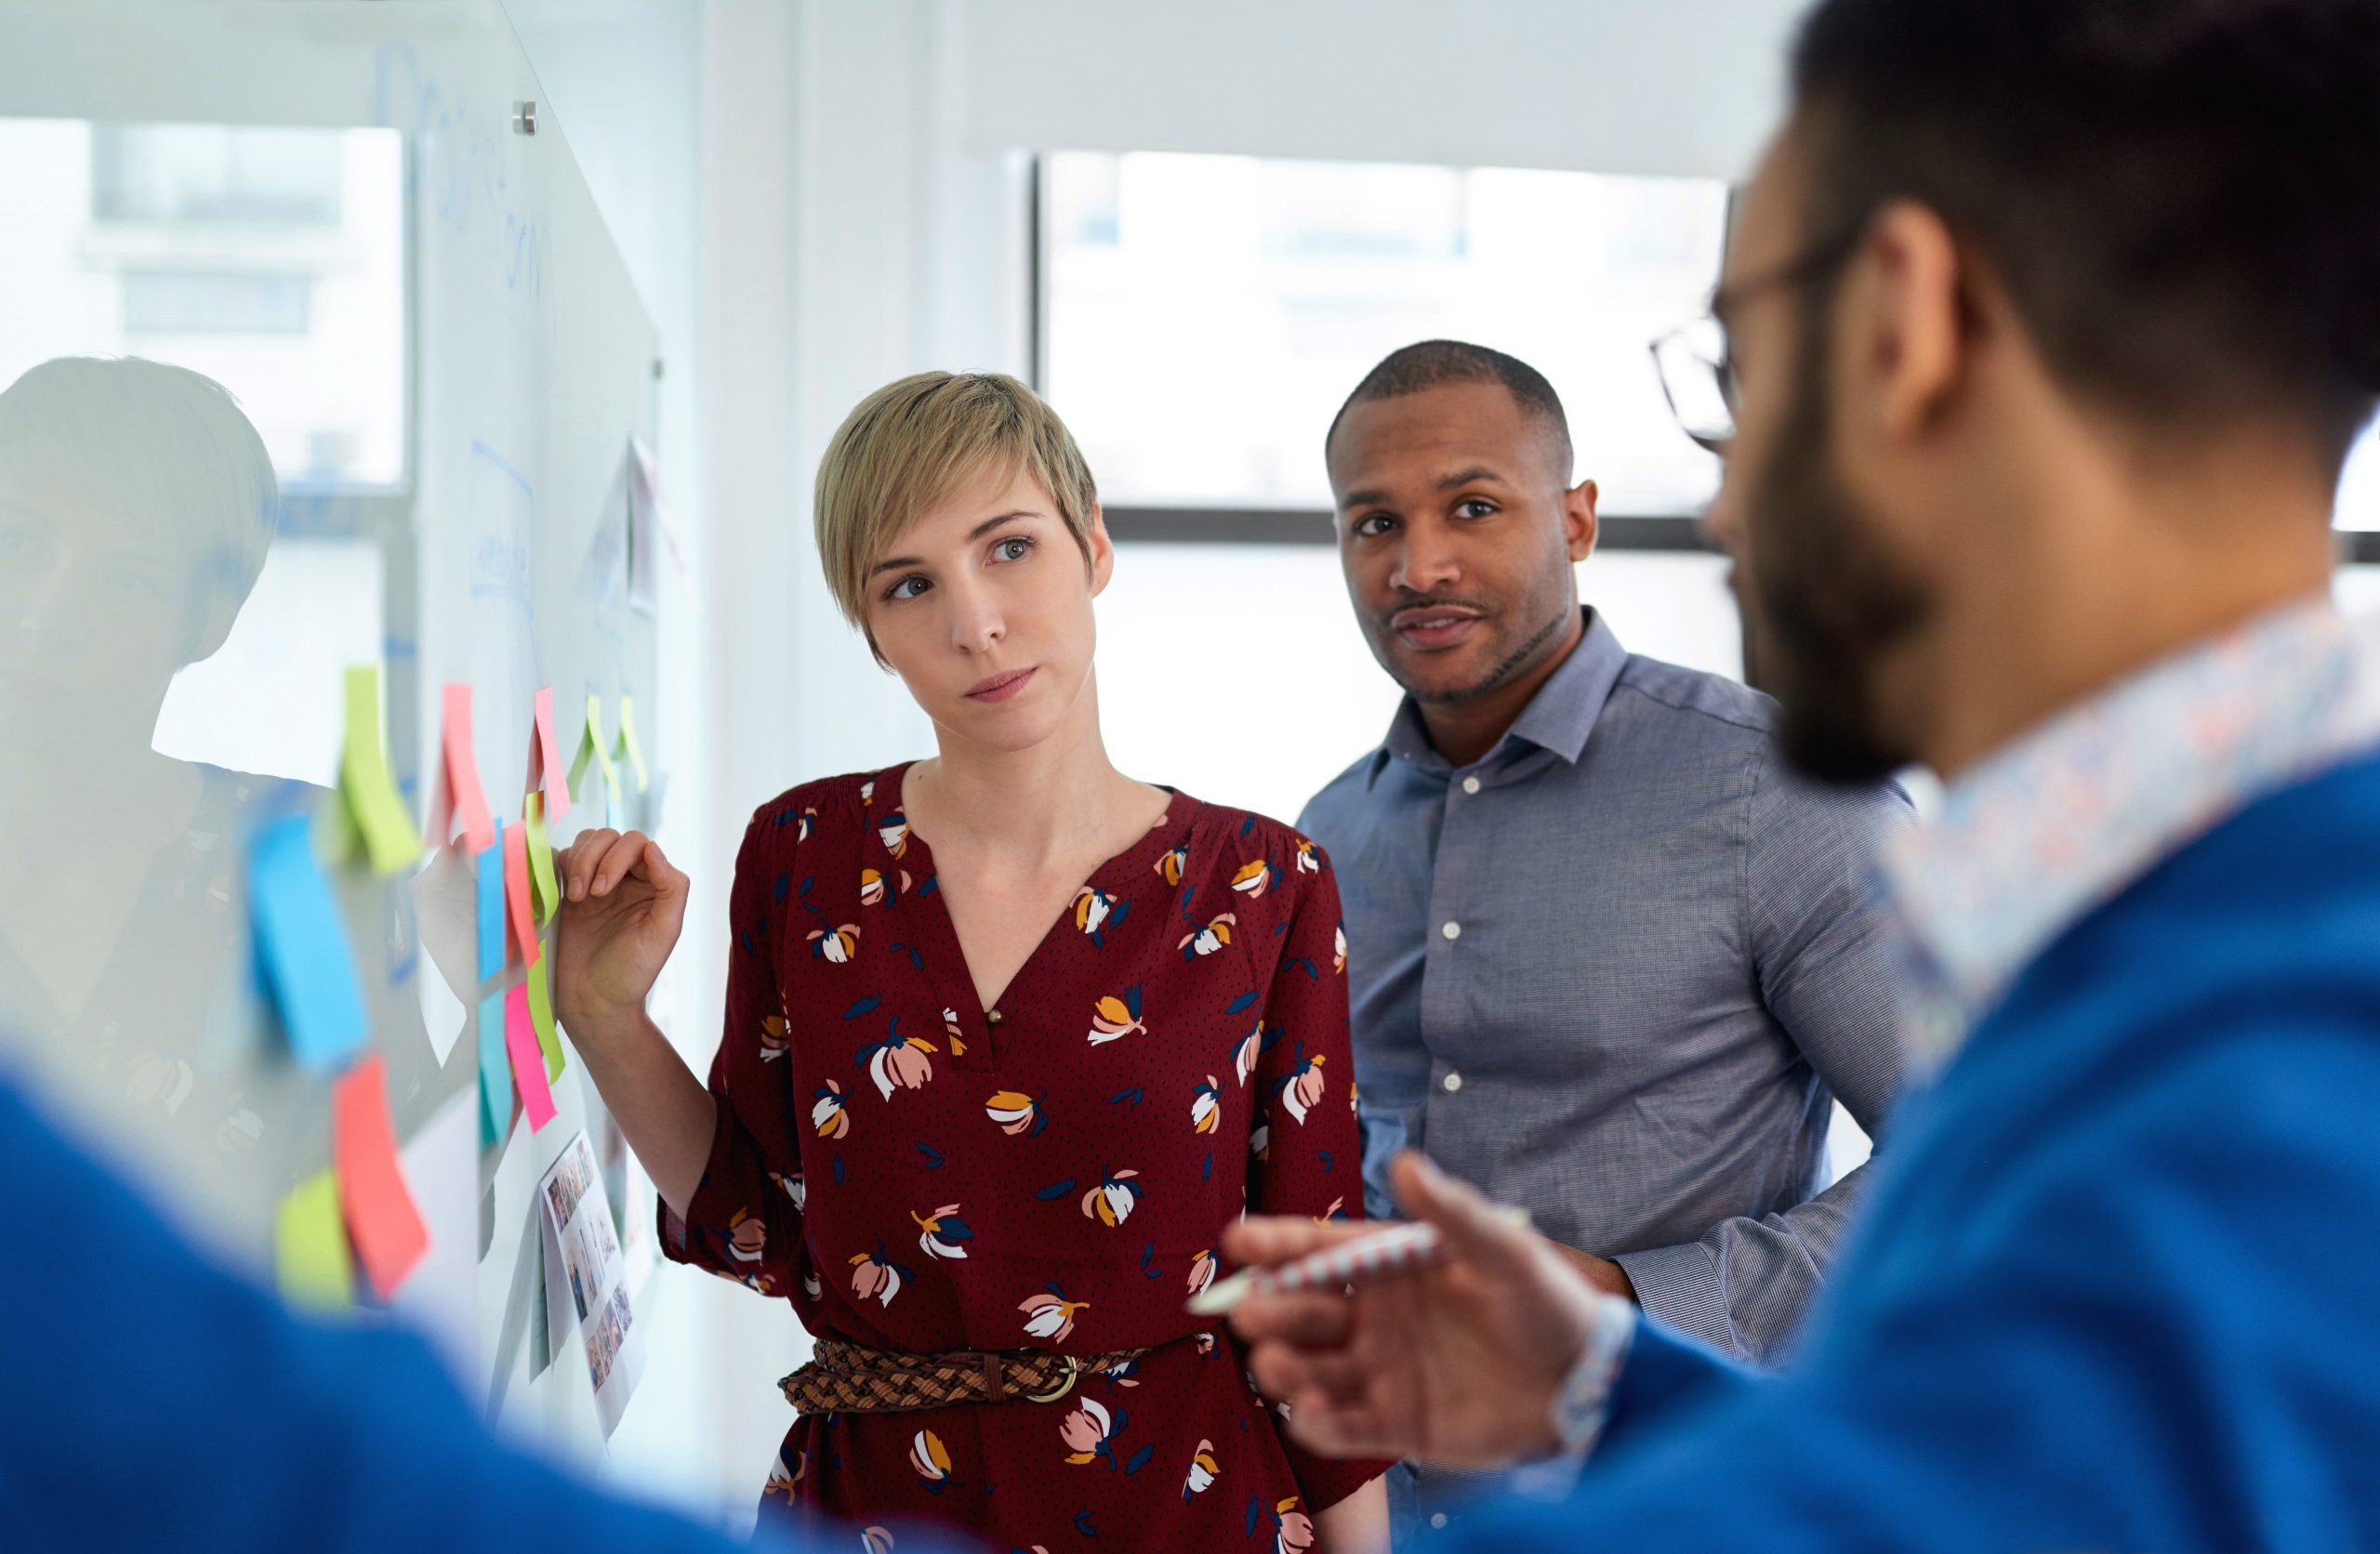 How to Avoid Bias and Promote Diversity and Inclusion in Hiring